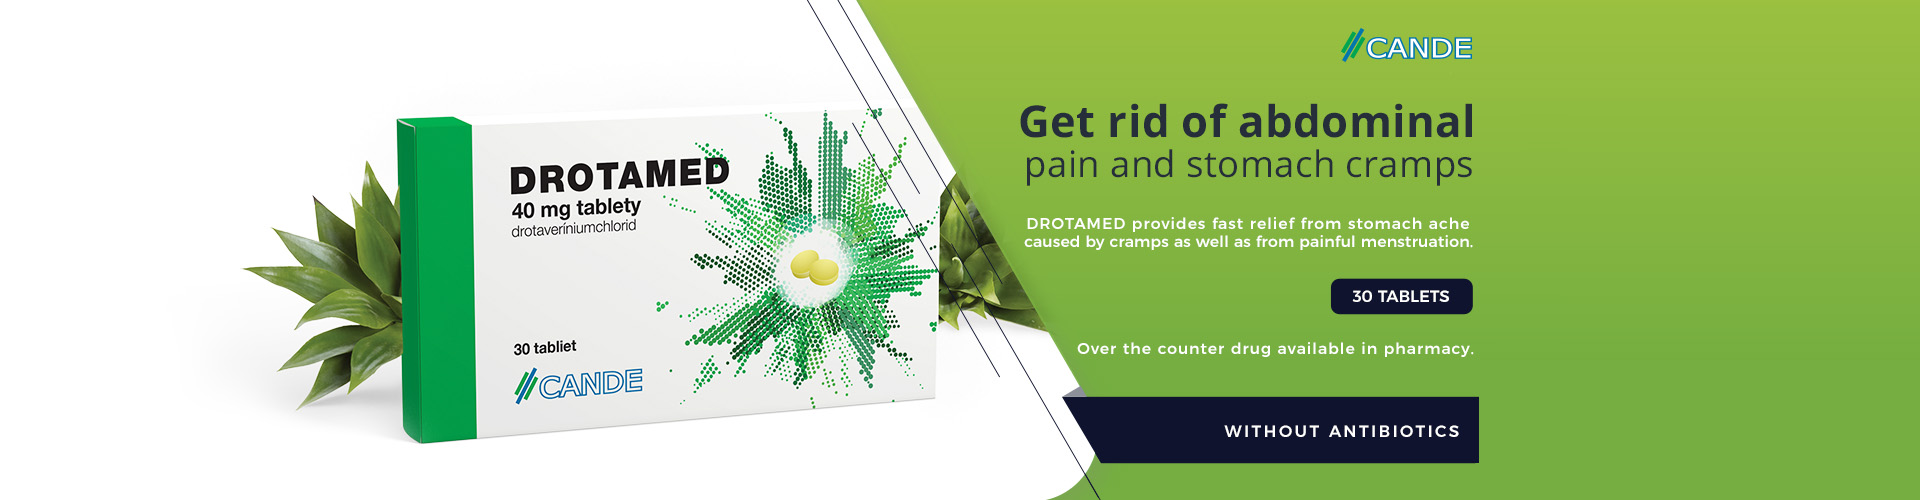 DROTAMED Get rid of abdominal pain and stomach cramps